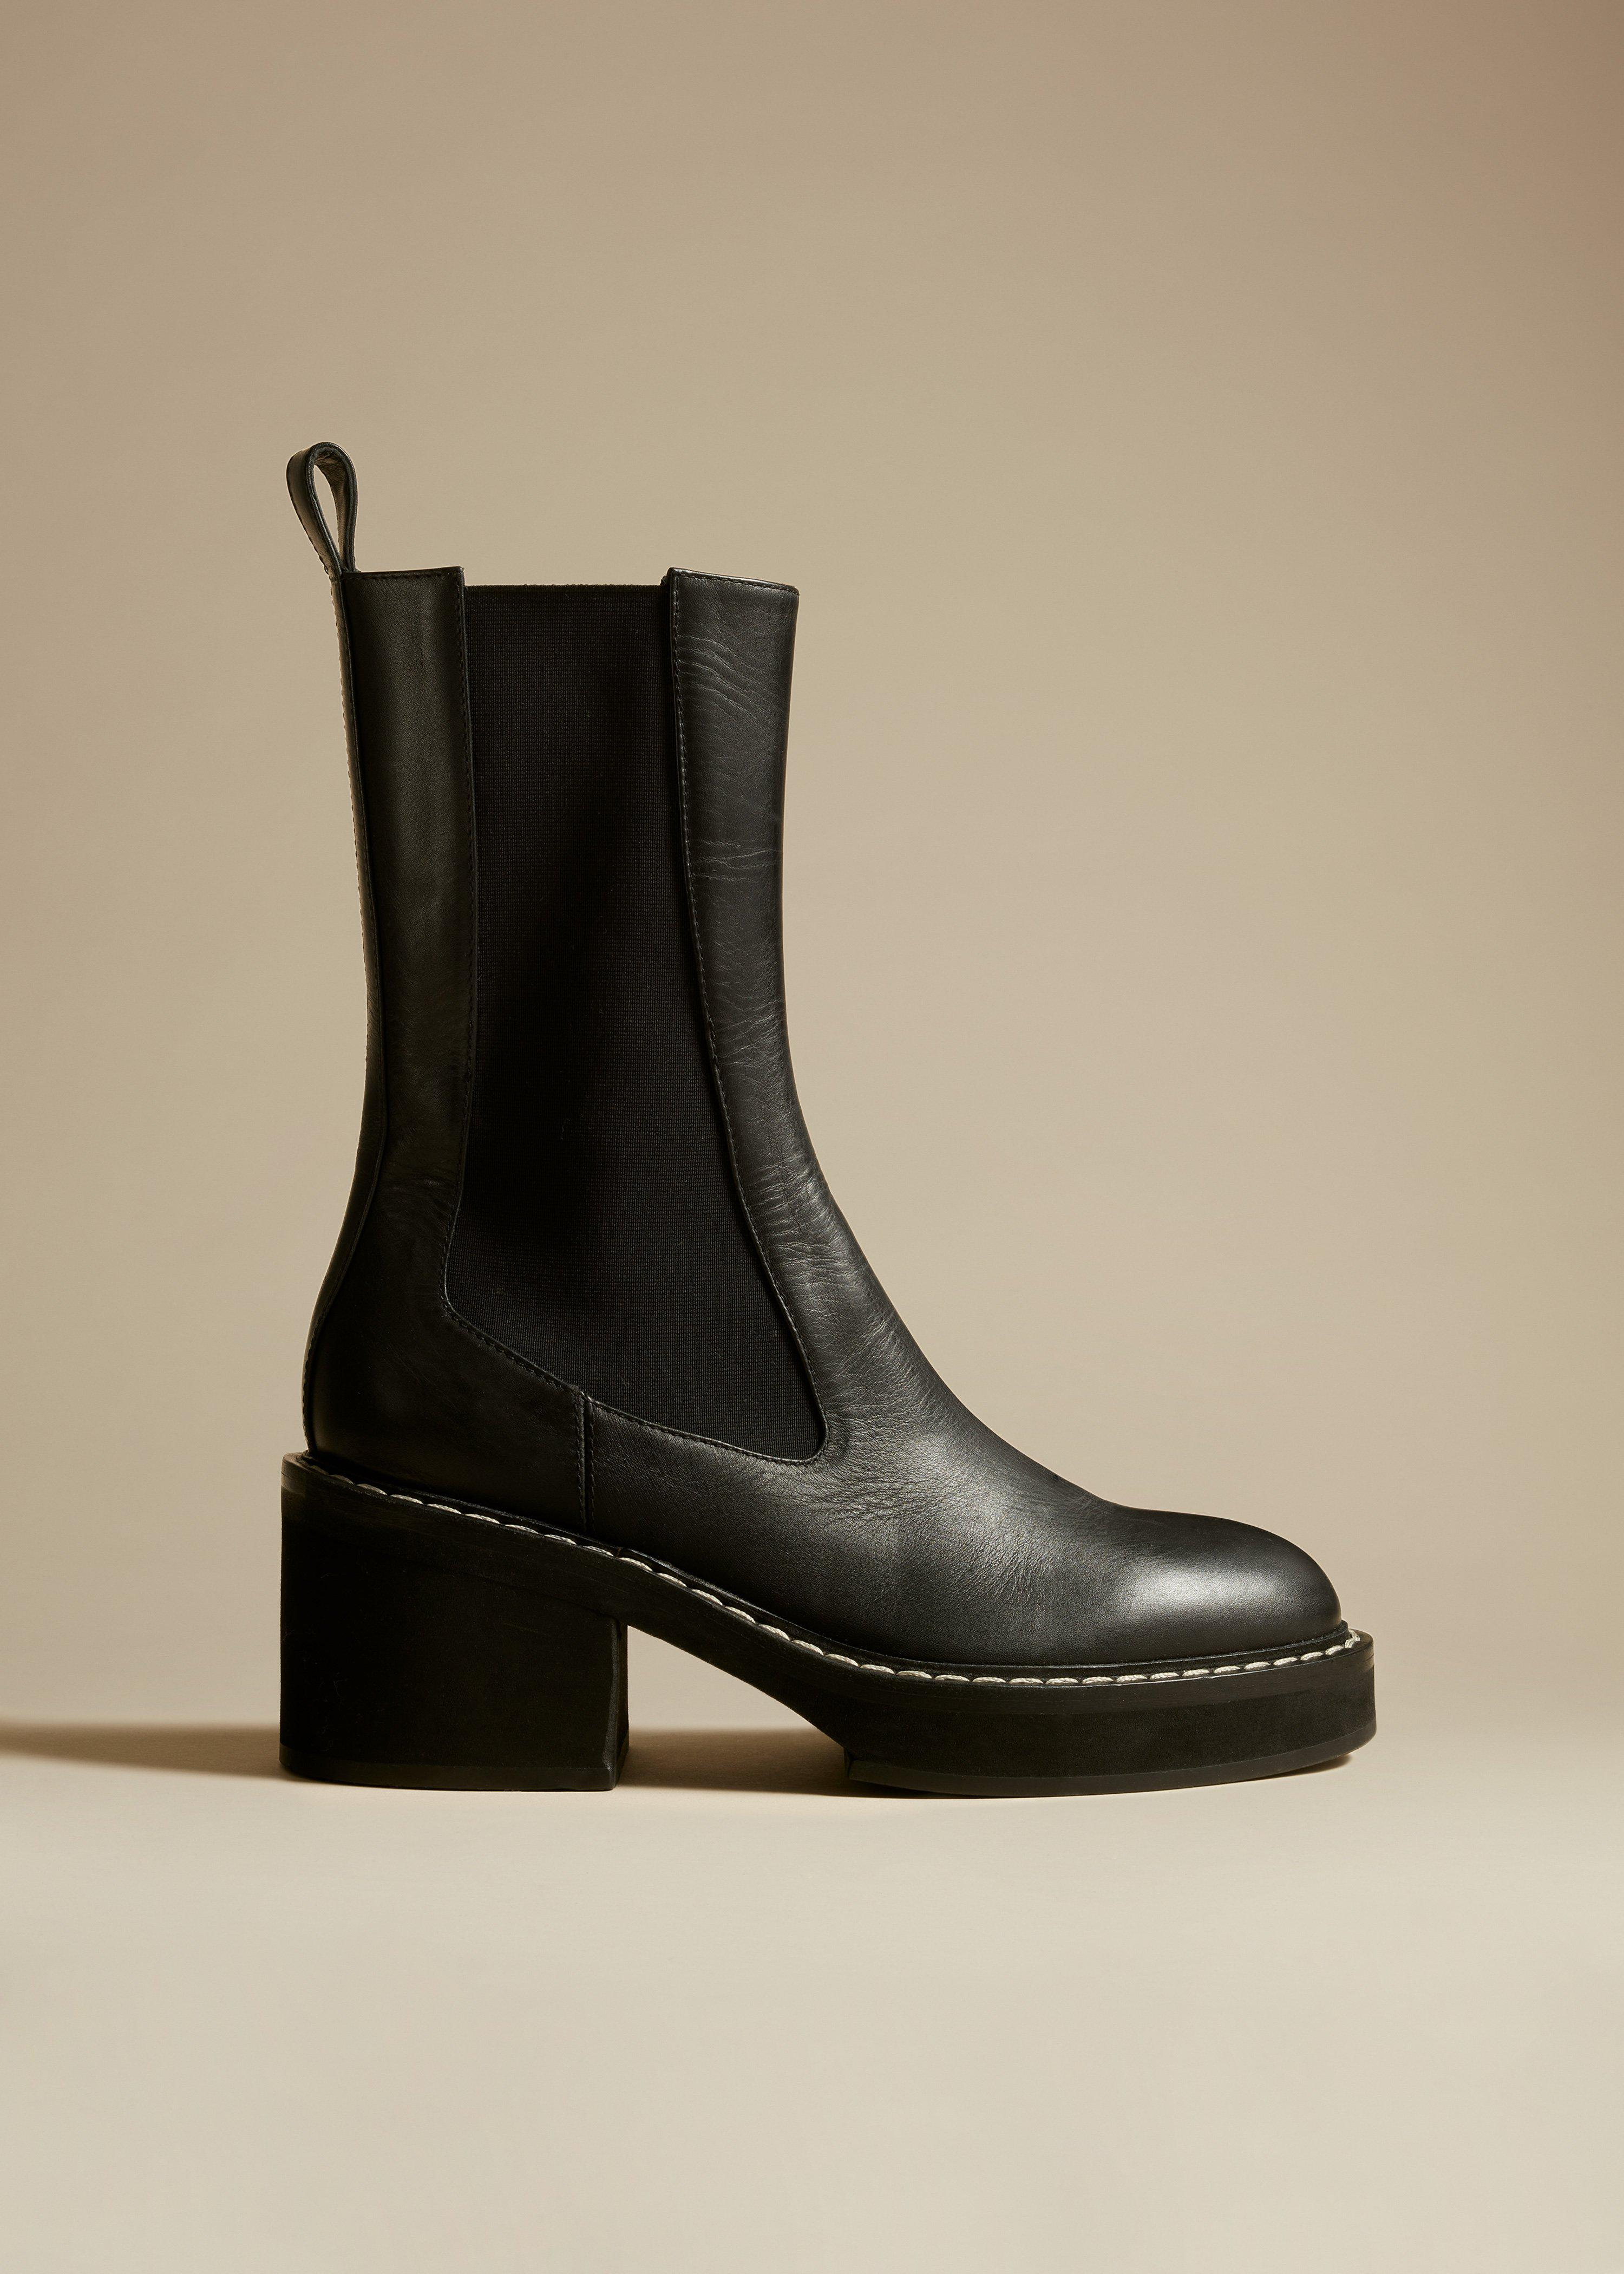 The Calgary Boot in Black Leather